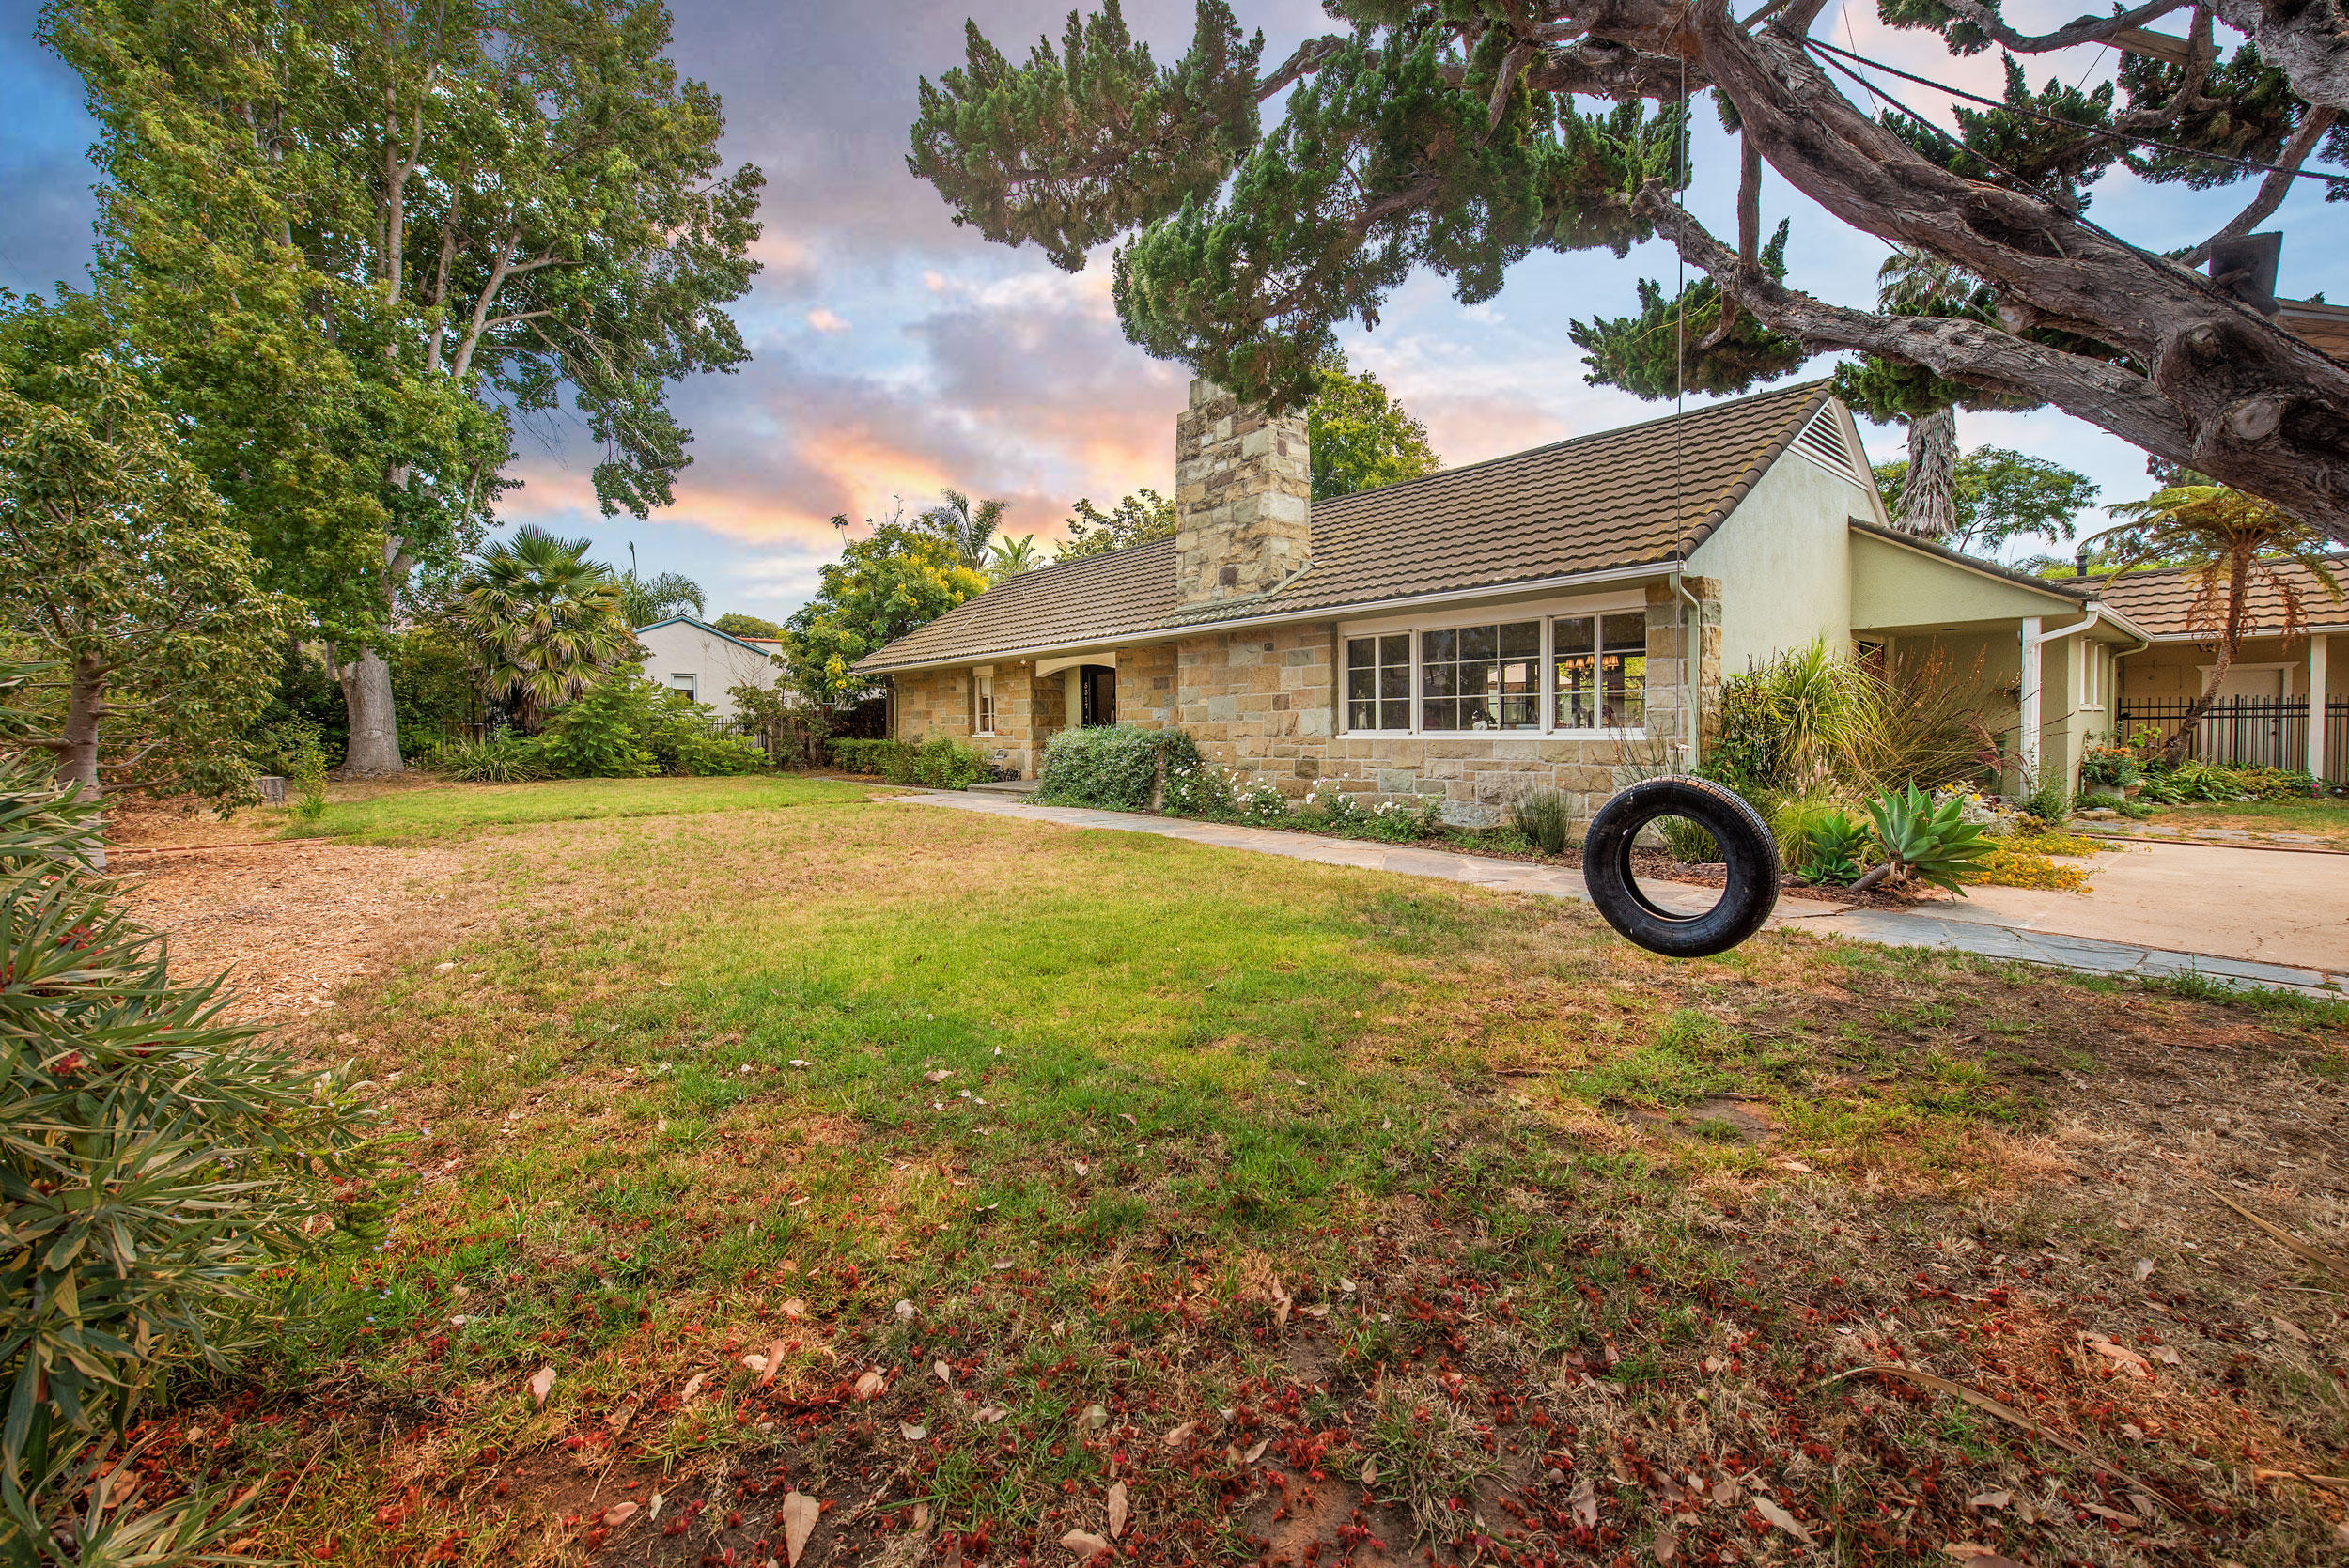 Property photo for 5317 Star Pine Rd Carpinteria, California 93013 - 16-1625